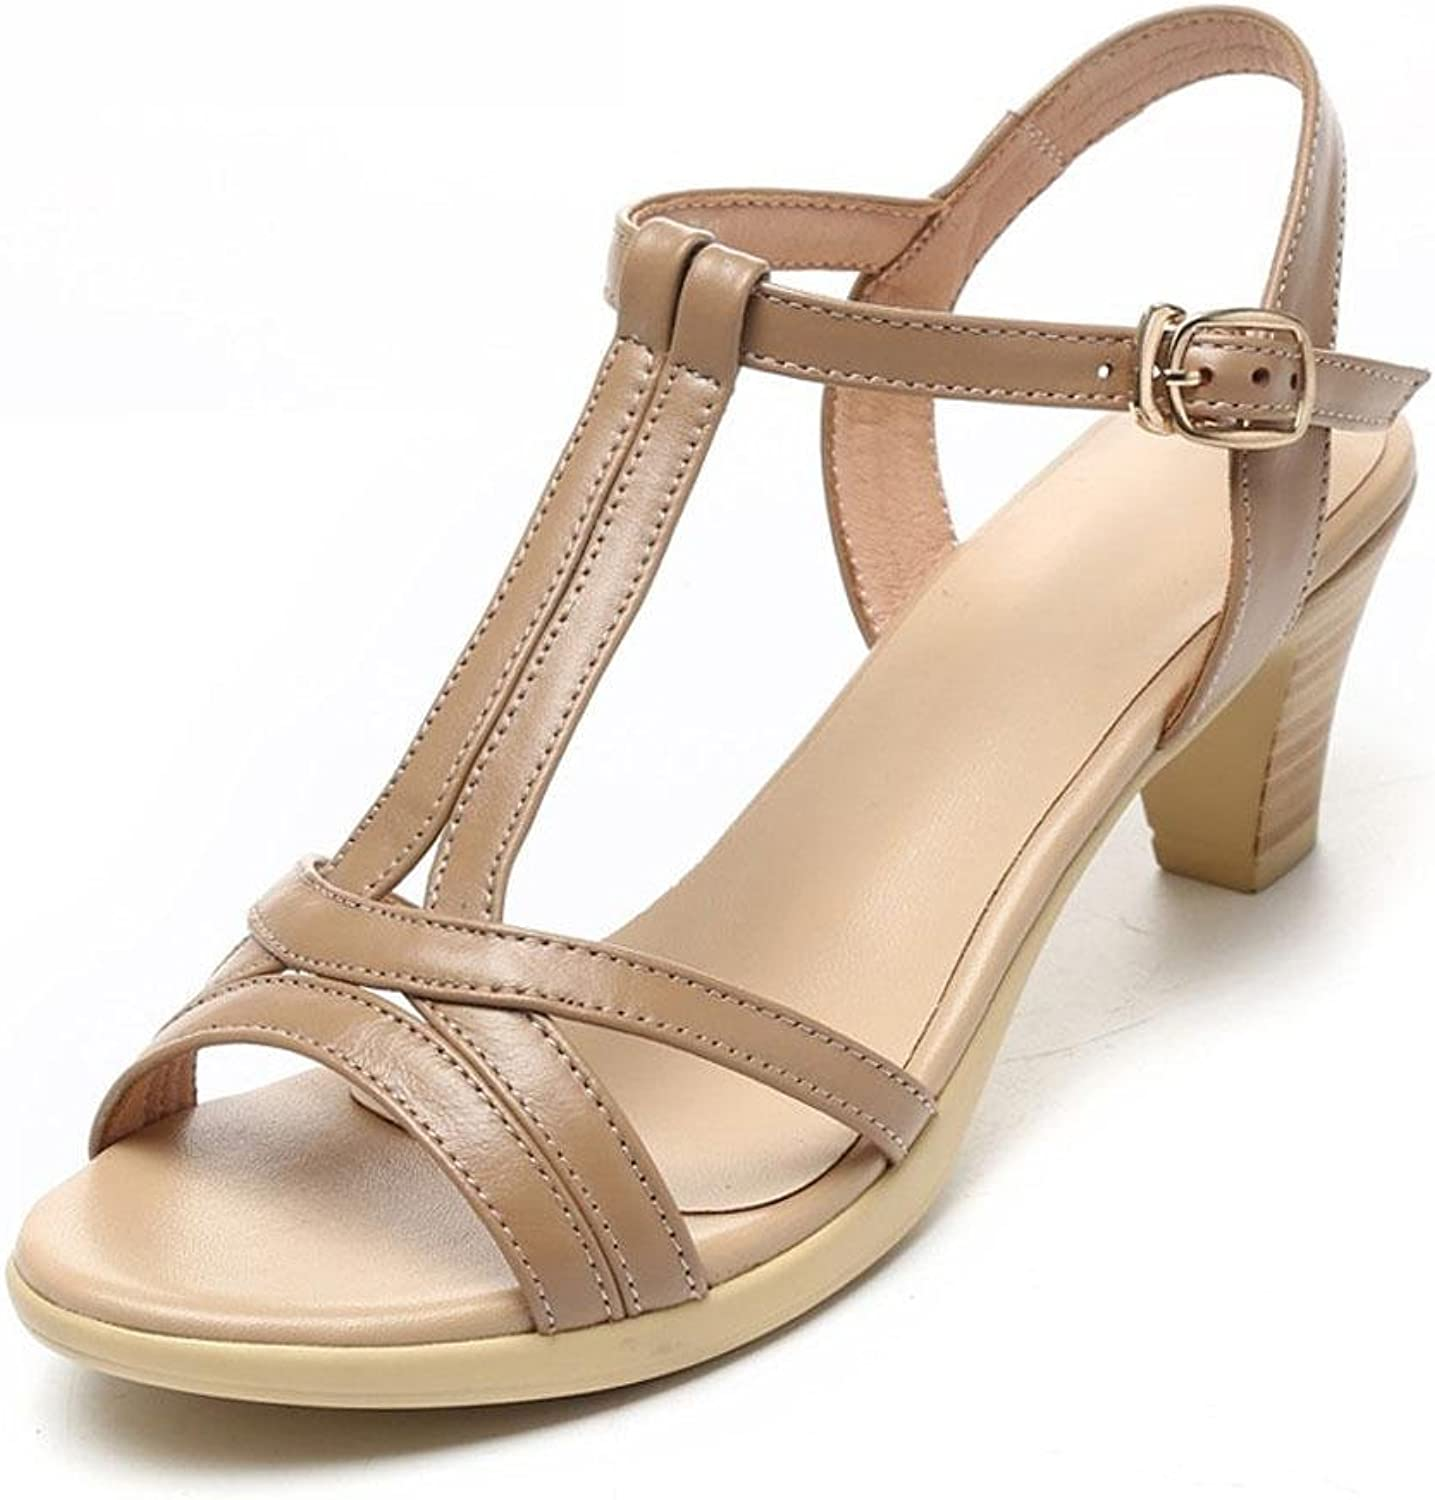 L@YC Women's Sandals in Summer with Thick Leather Leather Soft Skirt Comfortable Large Size 2017 Women's shoes